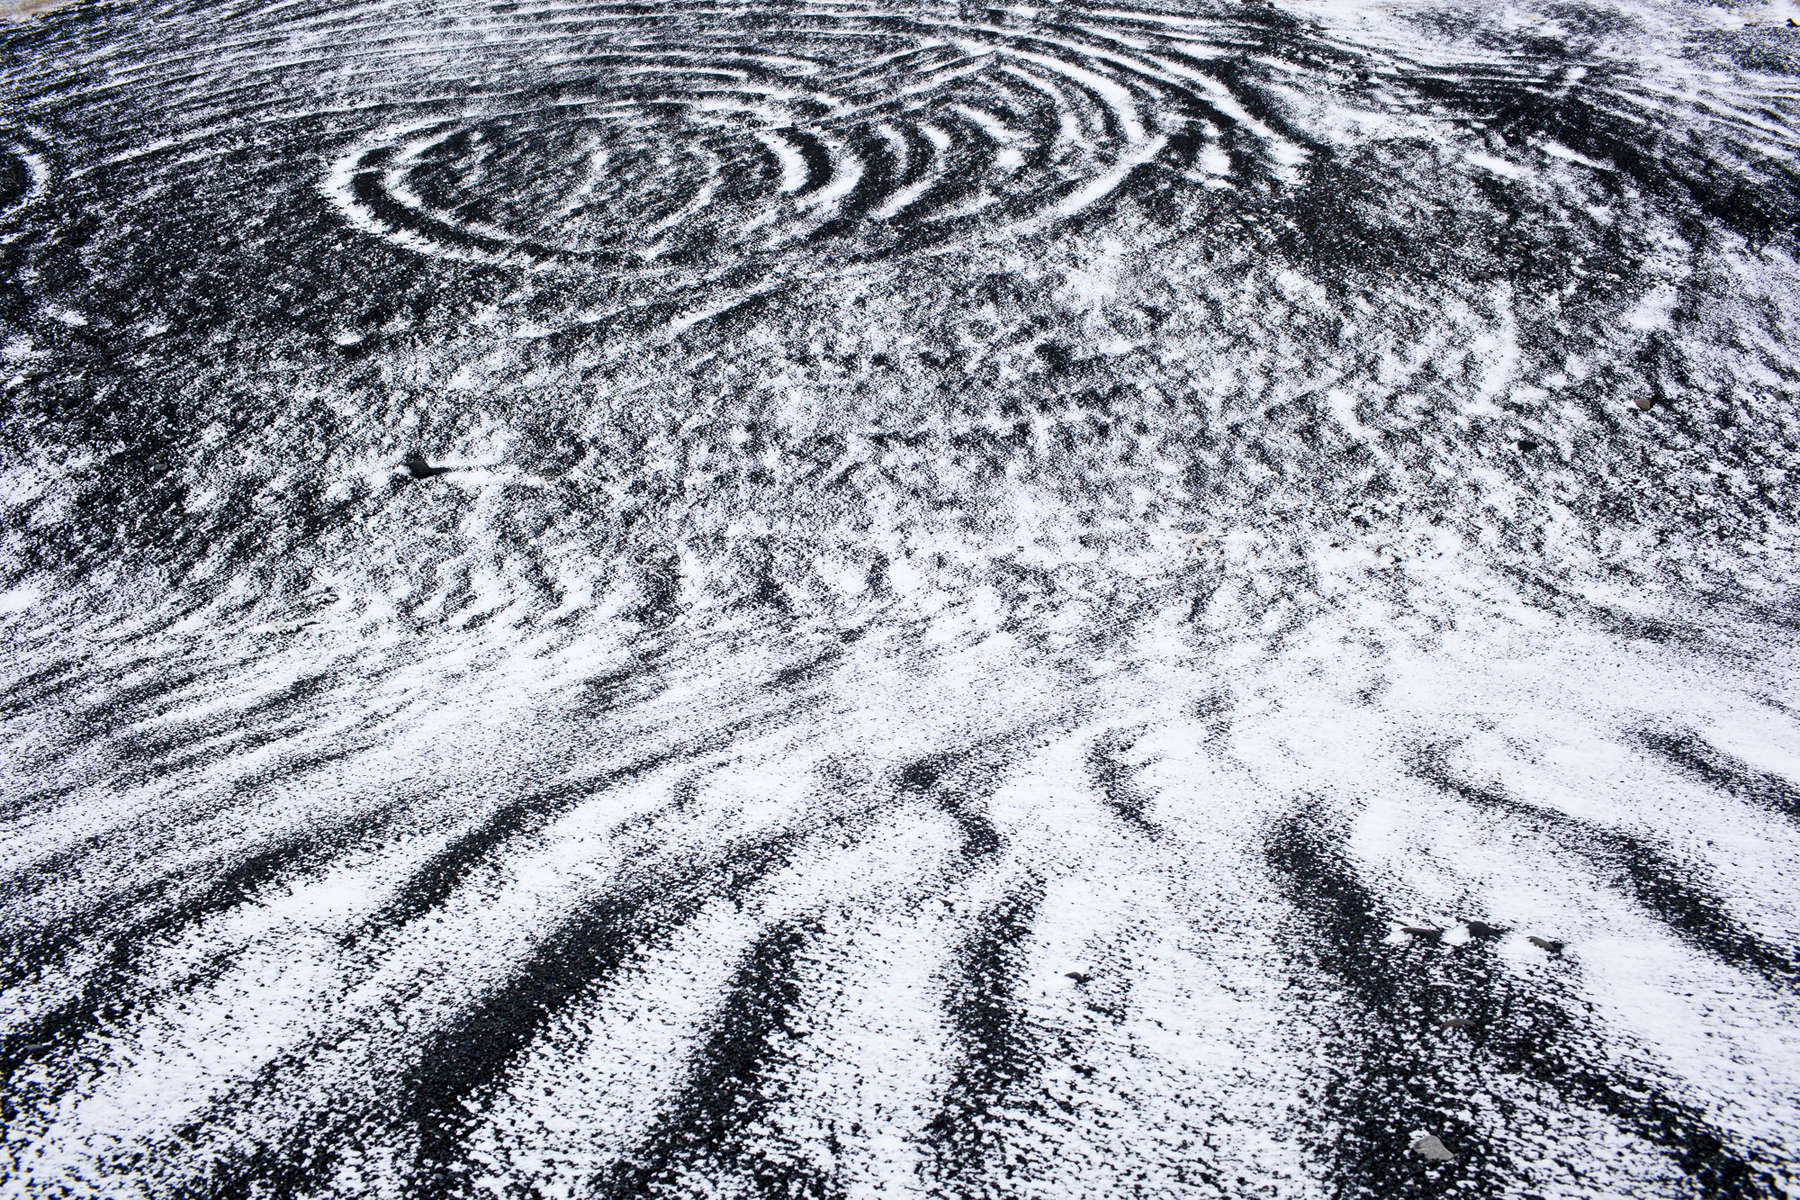 Artistic photo of intriate snow patterns.